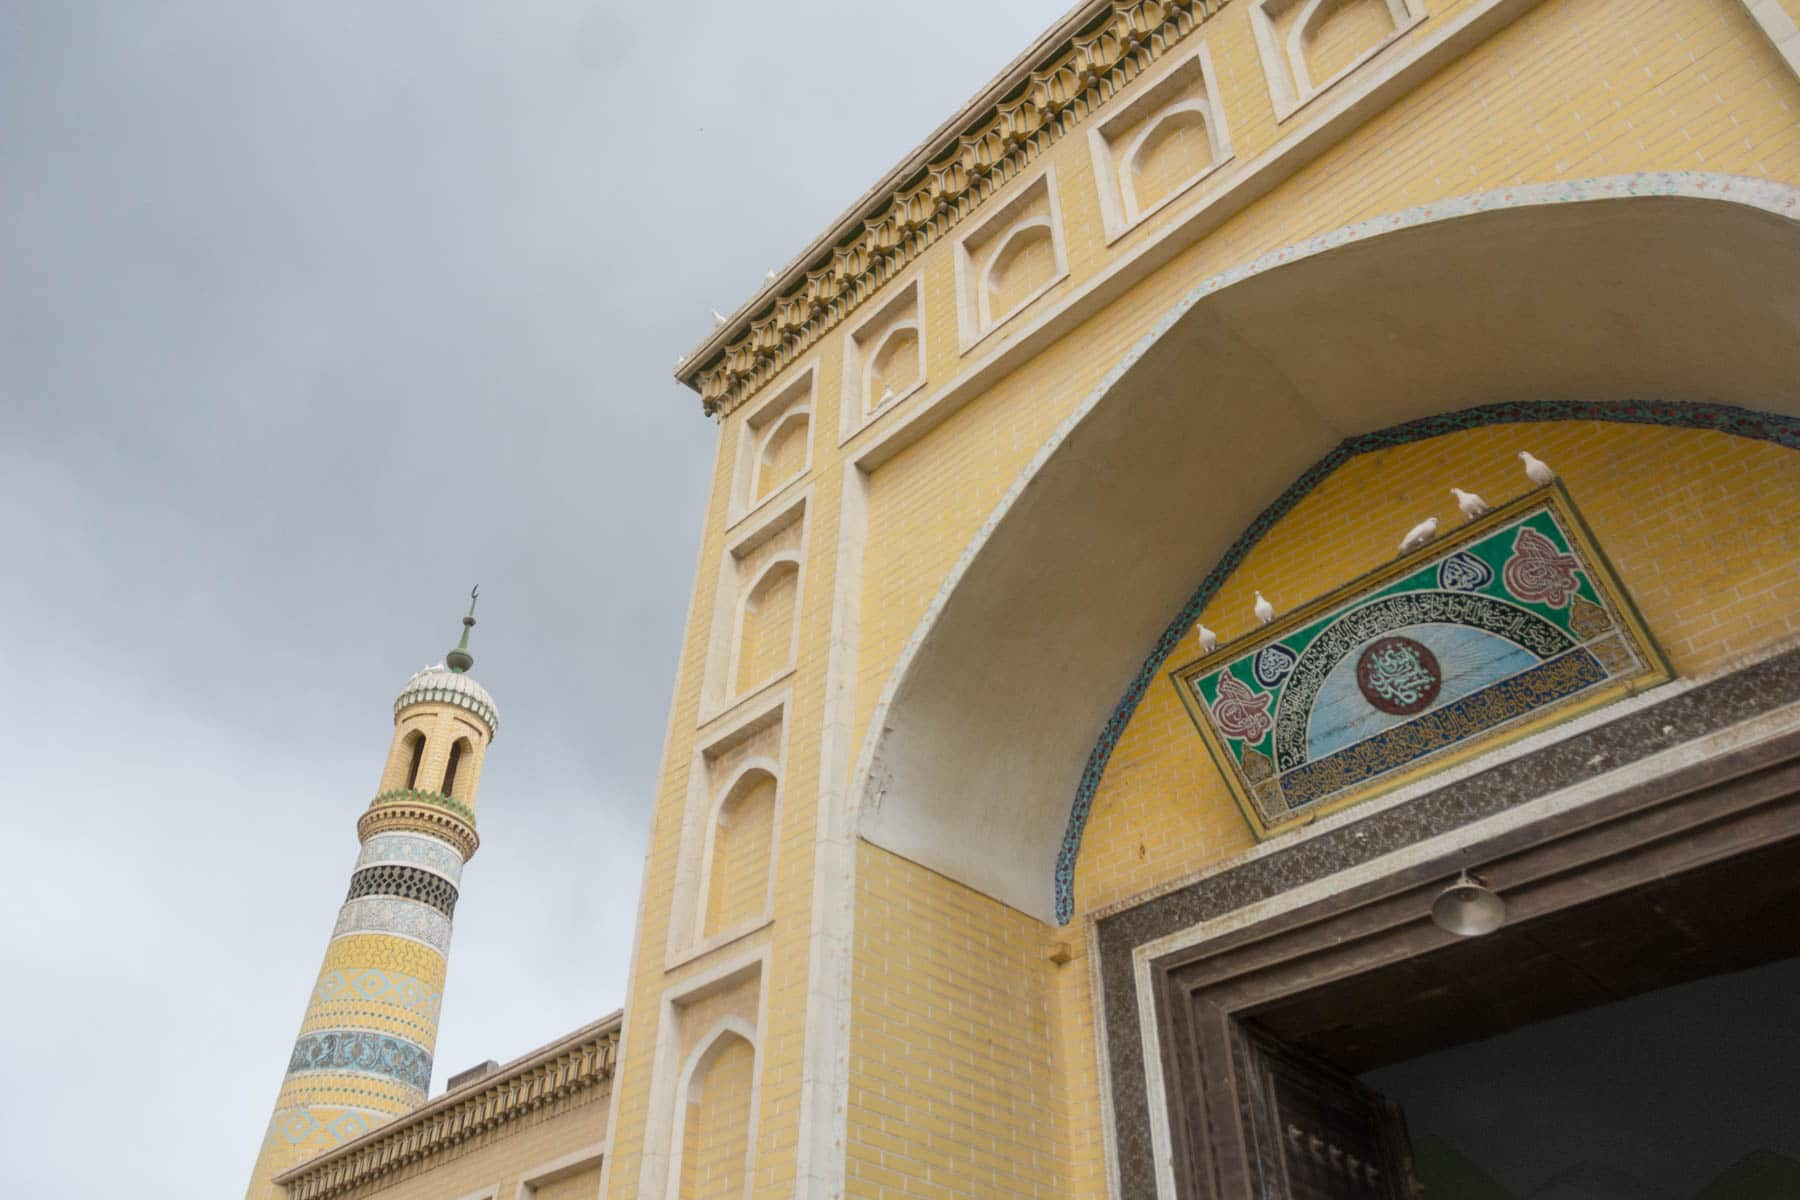 The Id Kah mosque is the biggest in Xinjiang. Unfortunately it costs 45 RMB to get in.